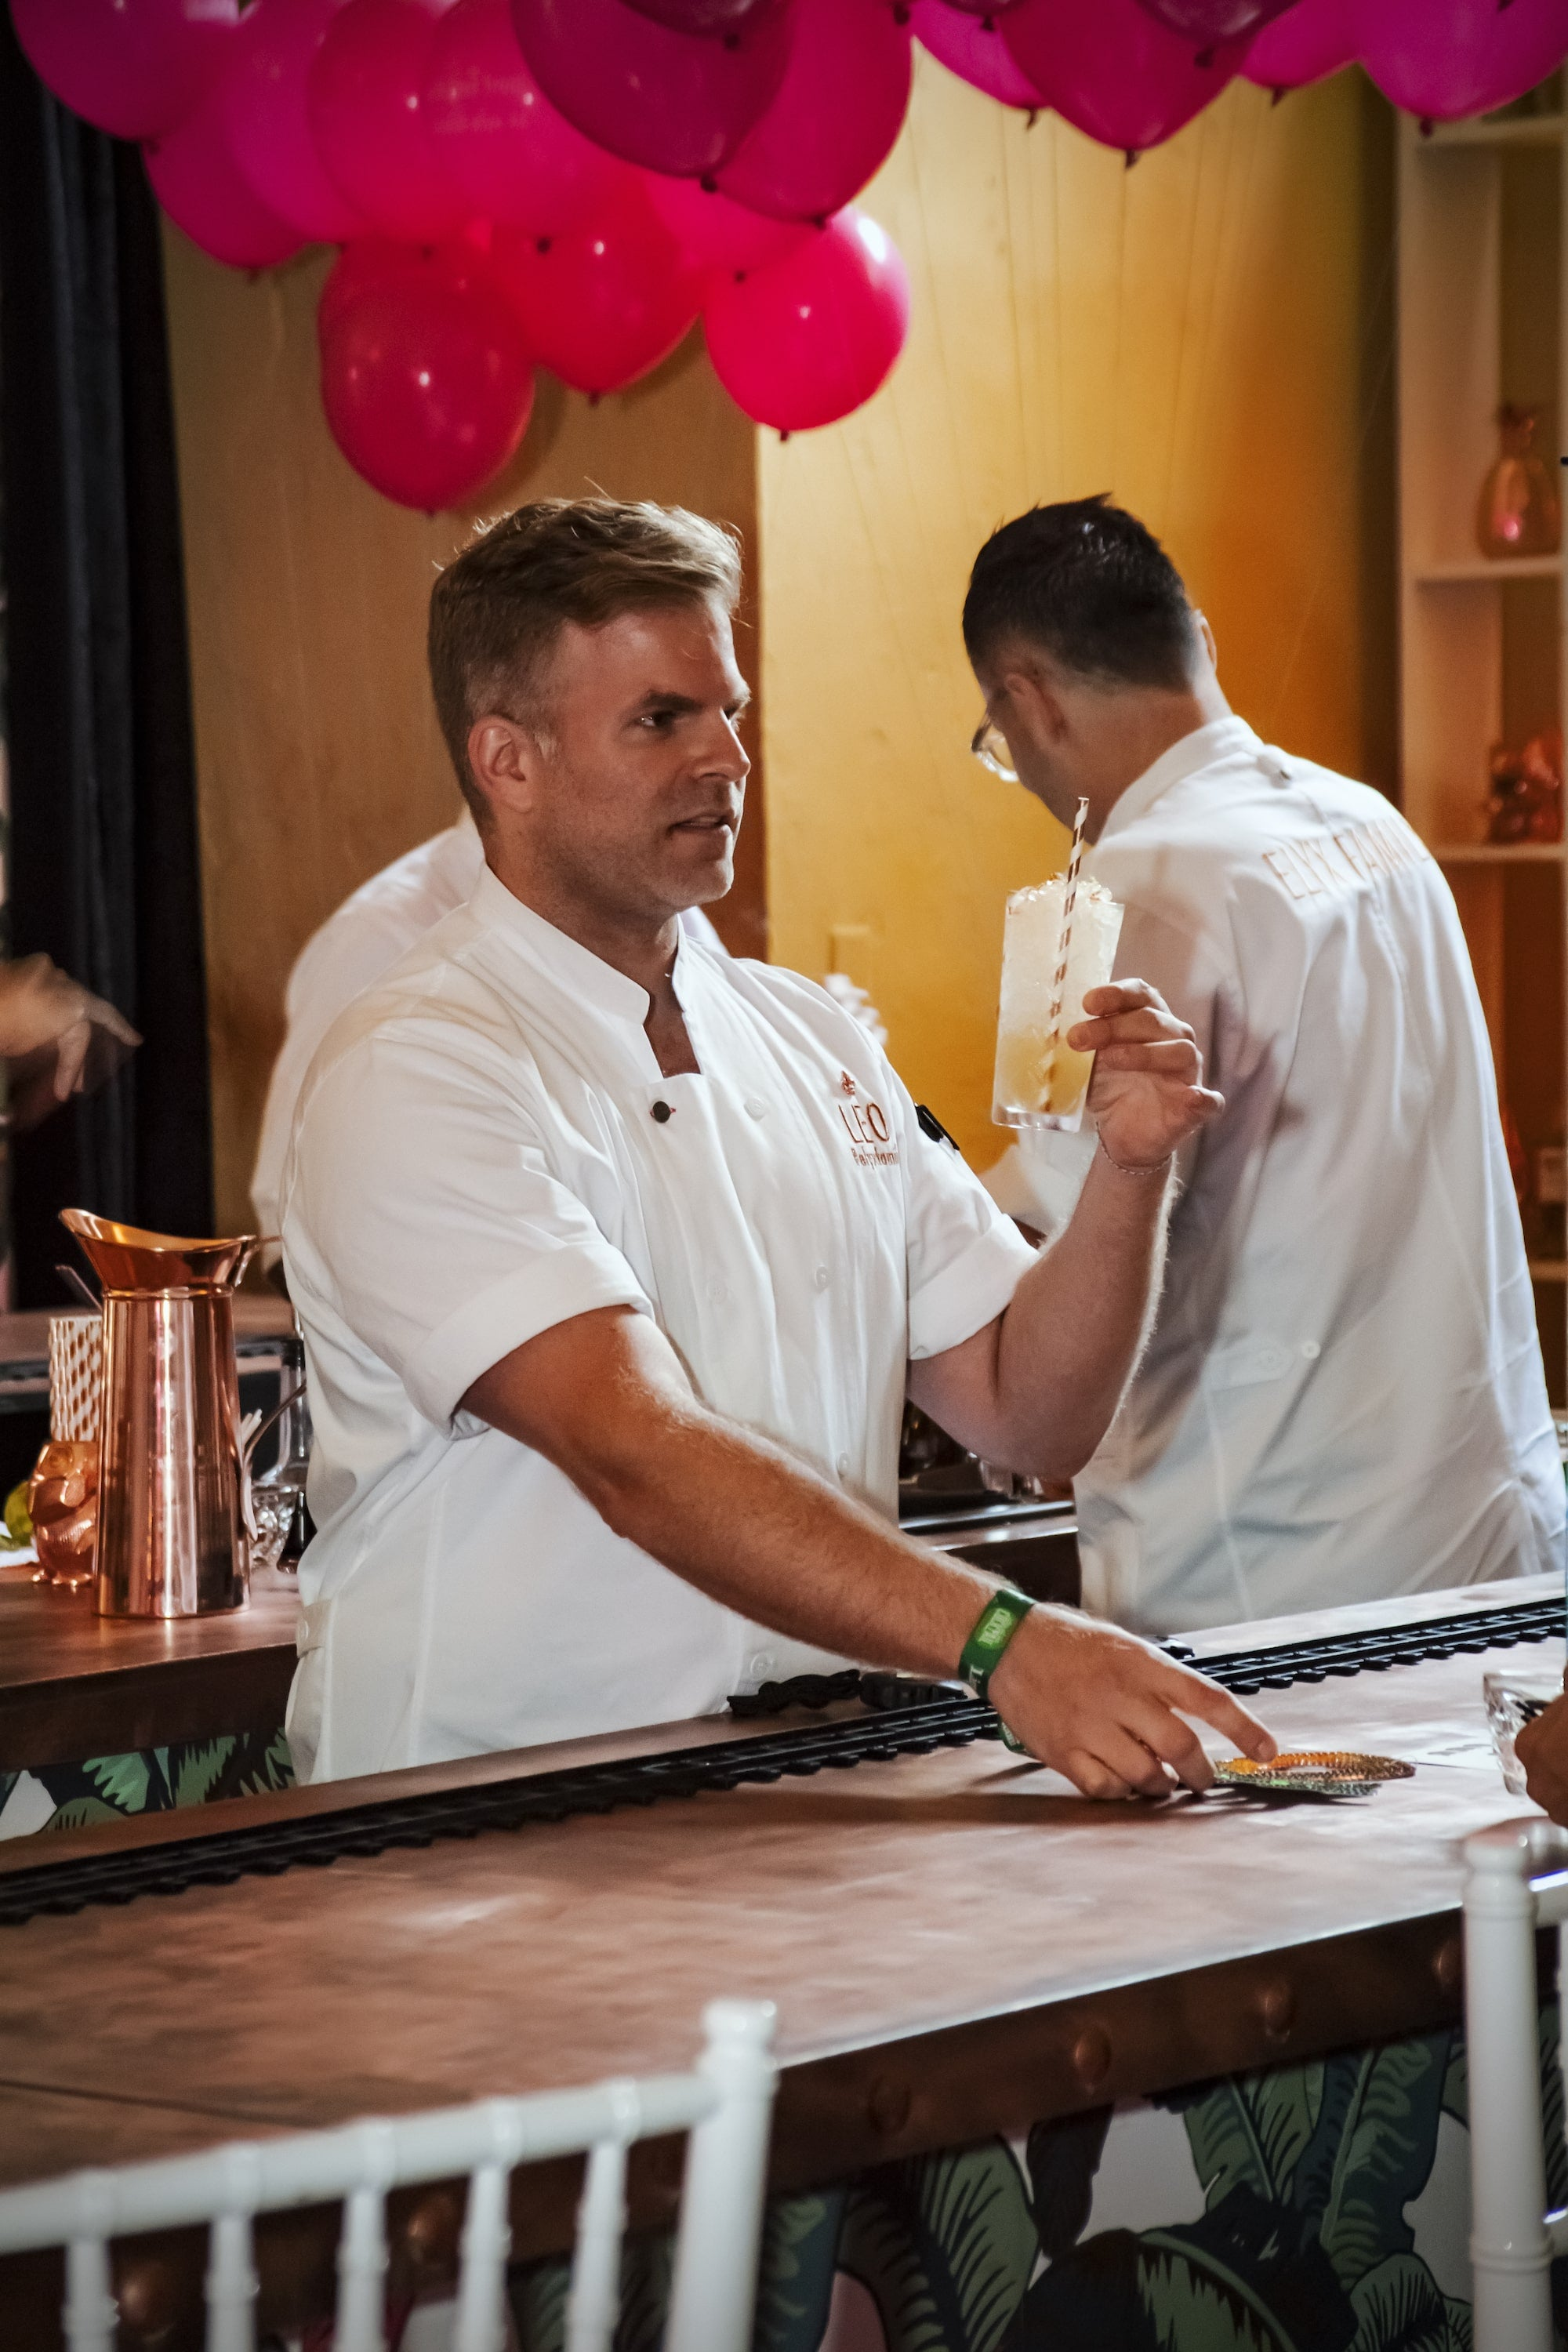 Leo Robitschek behind the bar at Tales of the Cocktail 2017